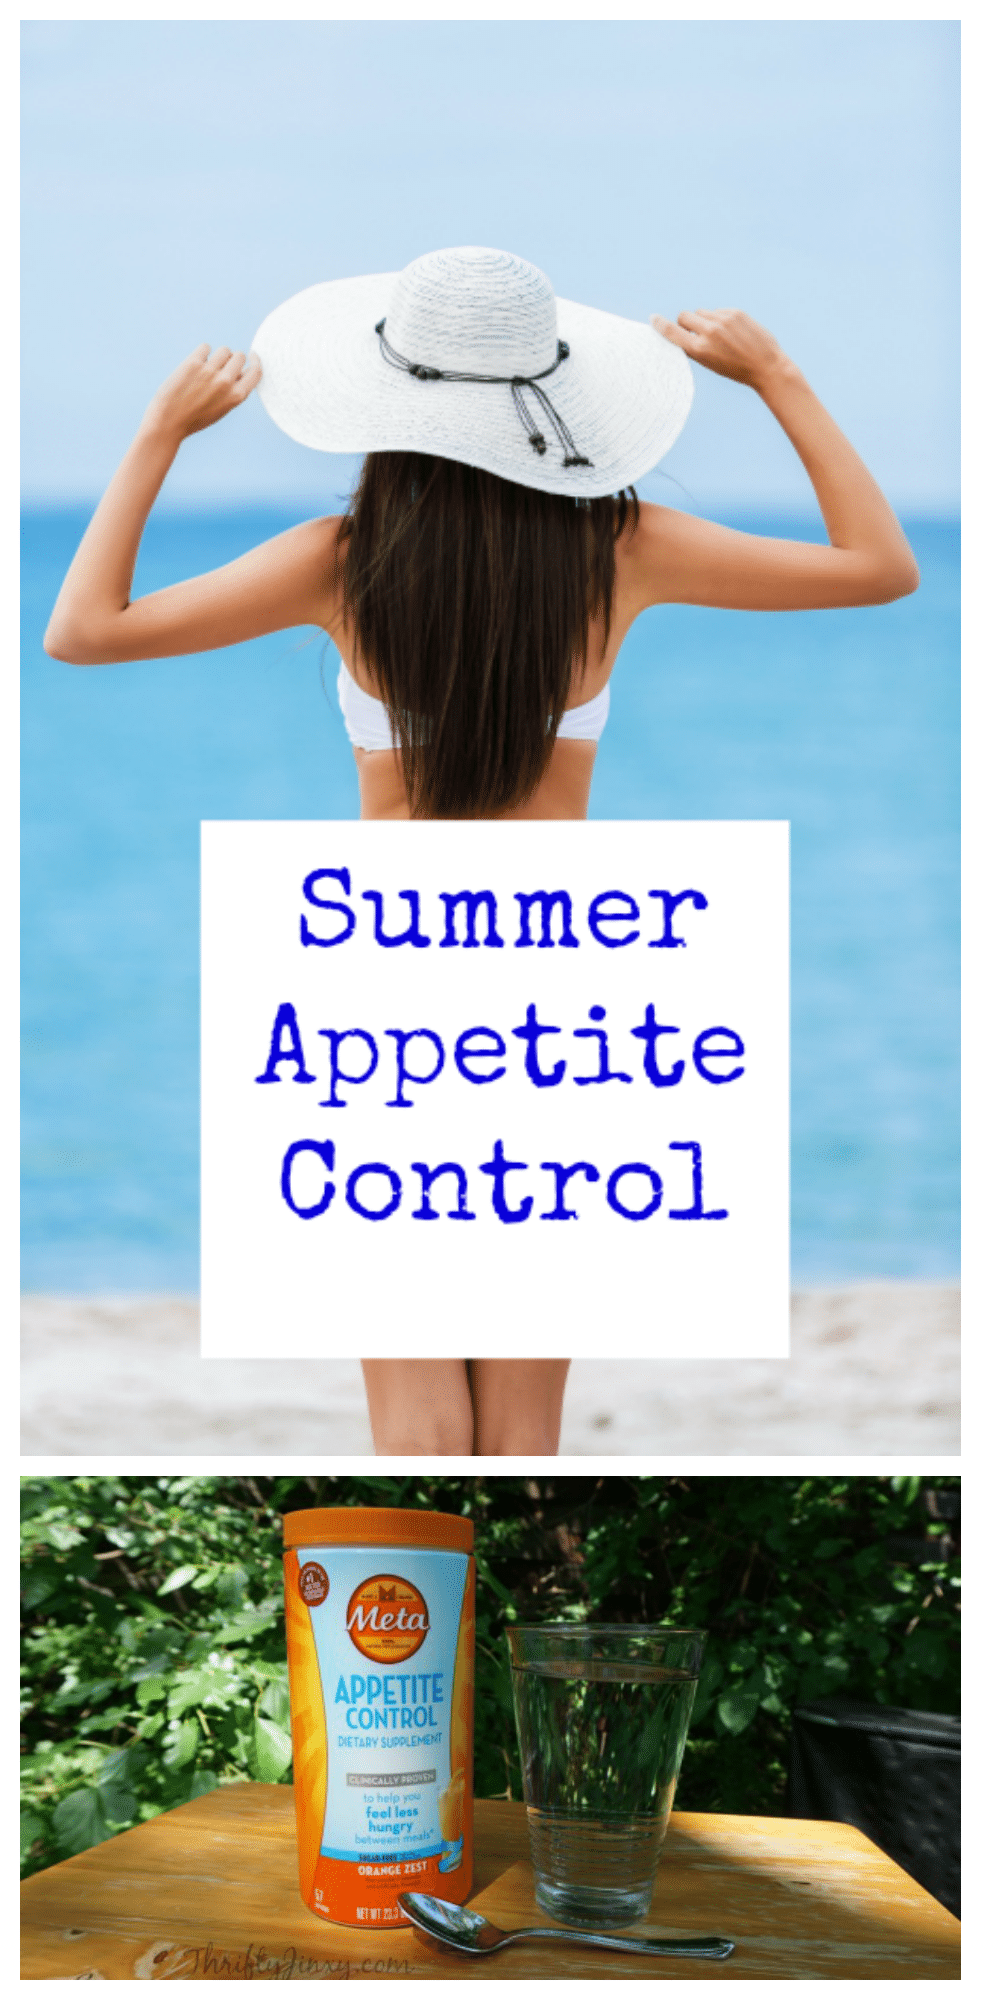 Summer Appetite Control with Meta Appetite Control